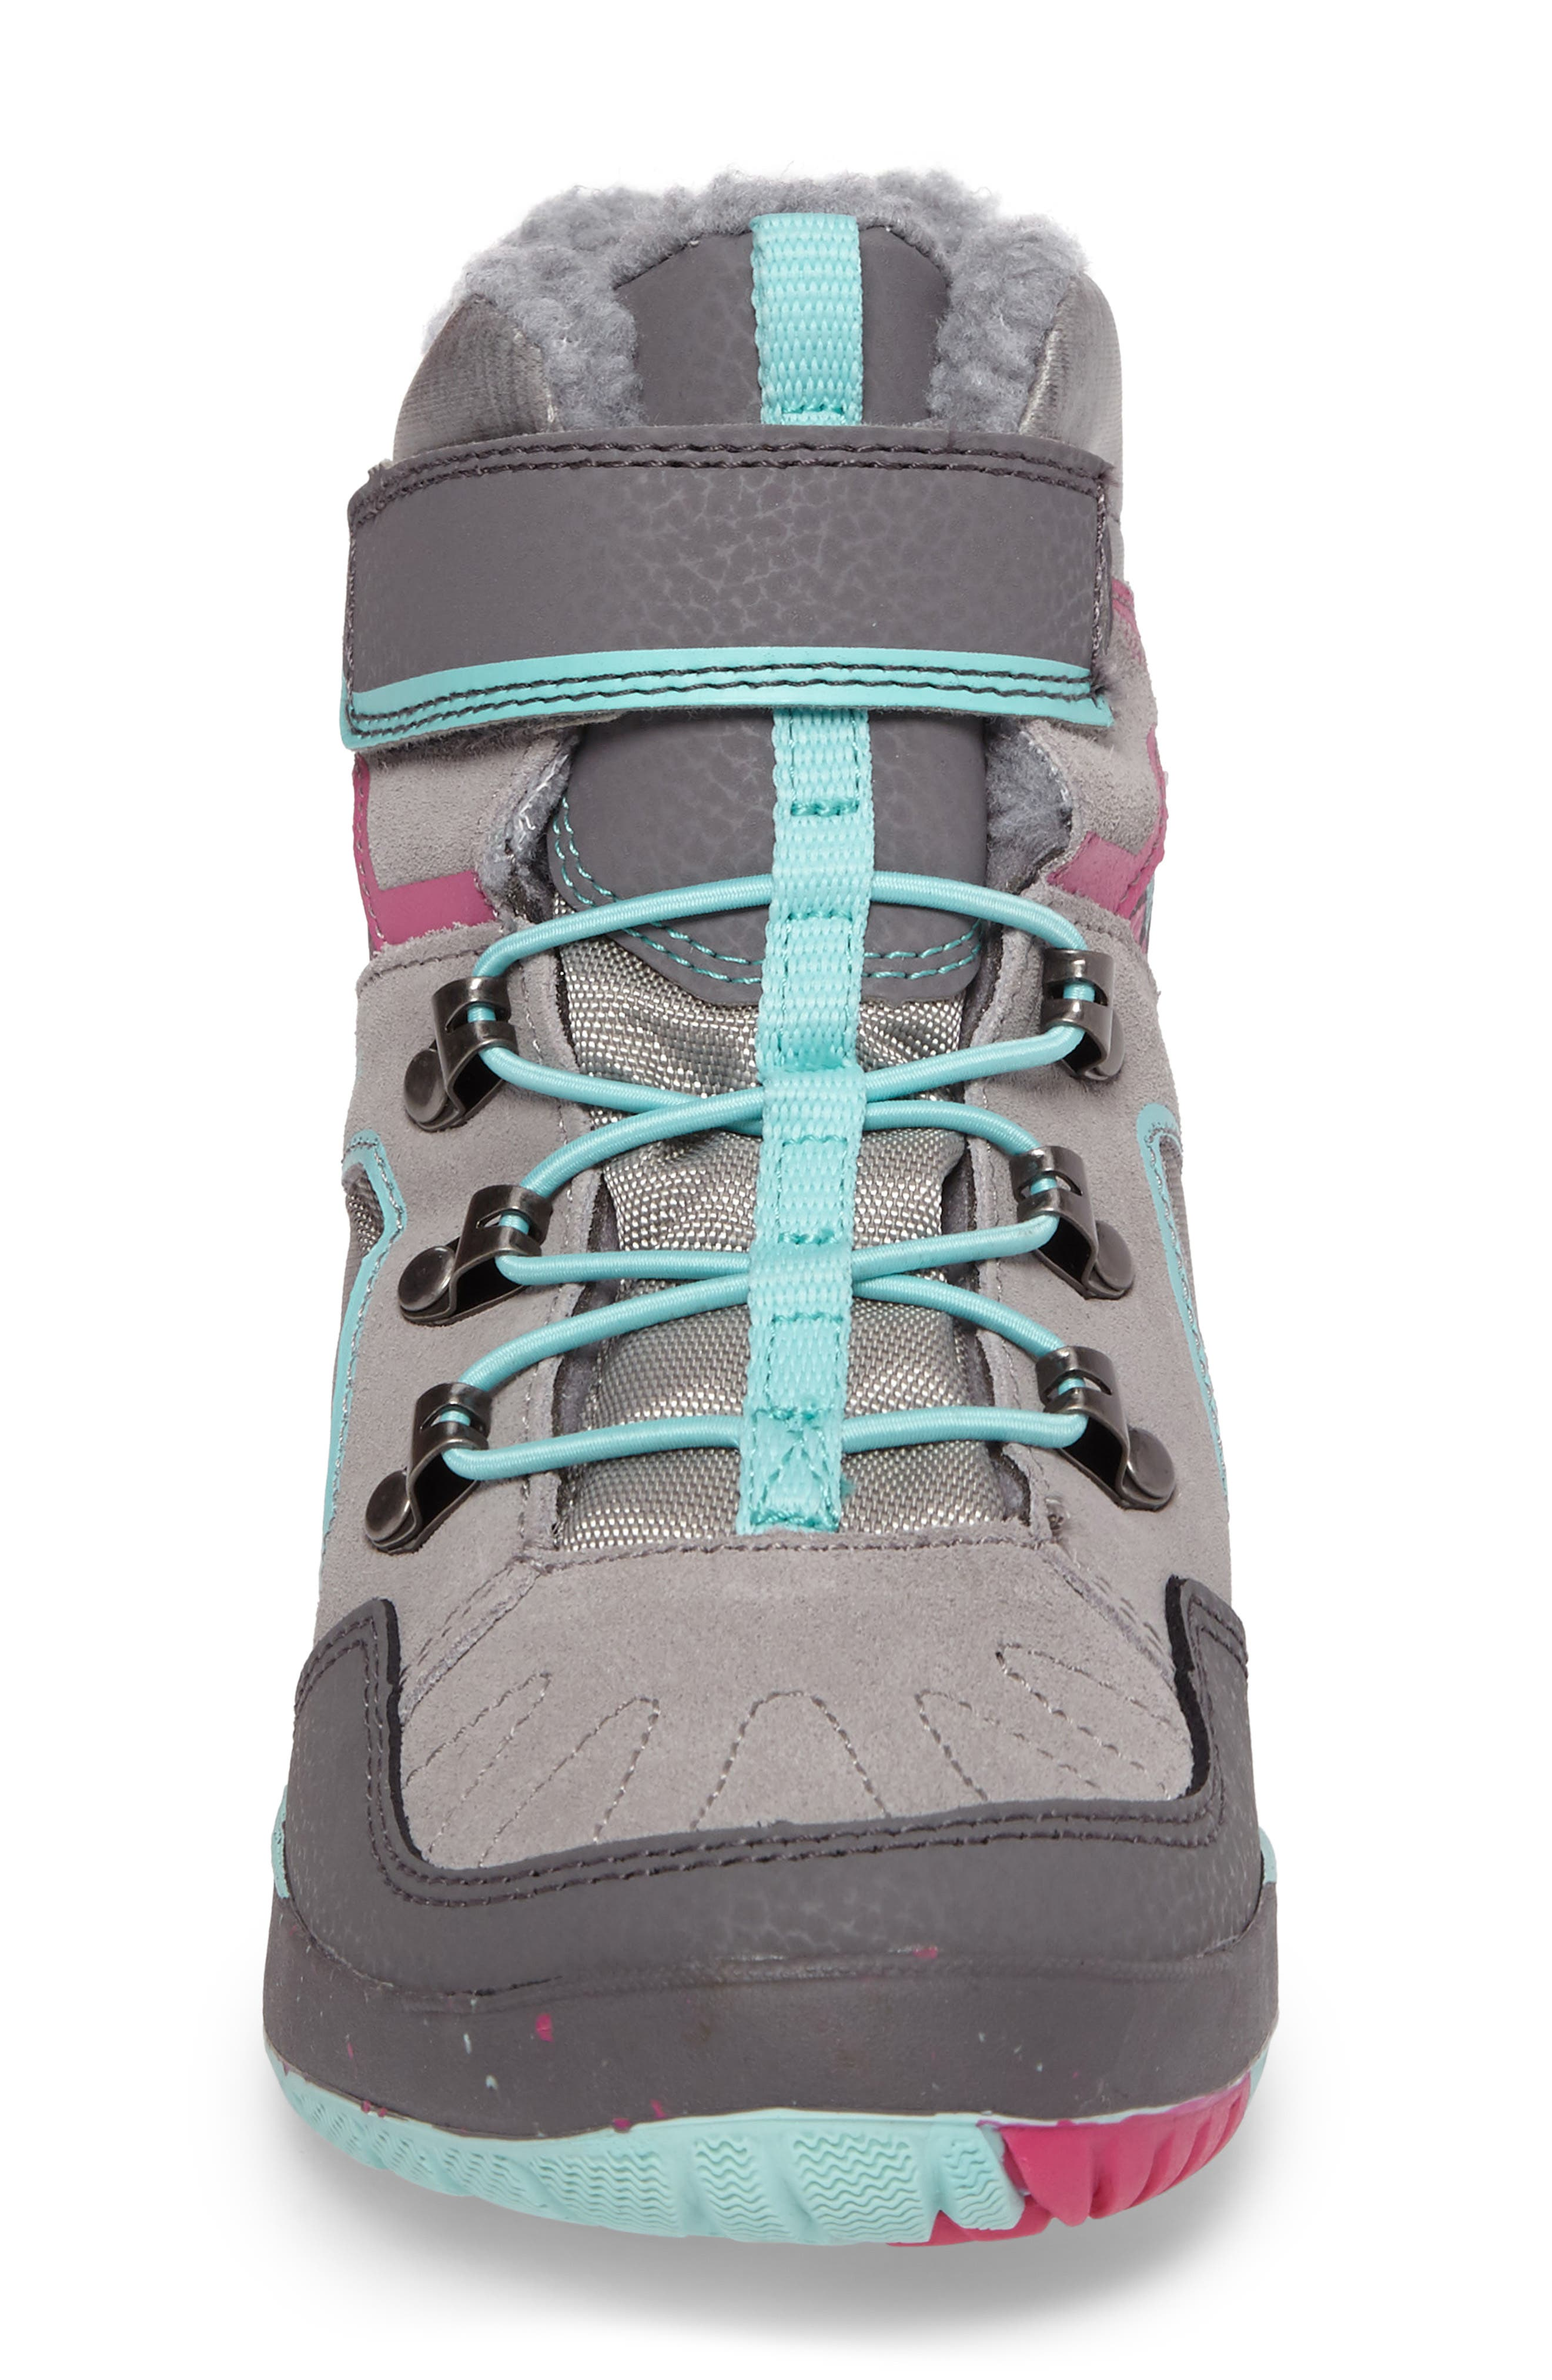 Moab FST Polar Mid Waterproof Insulated Sneaker Boot,                             Alternate thumbnail 4, color,                             Grey/ Multi